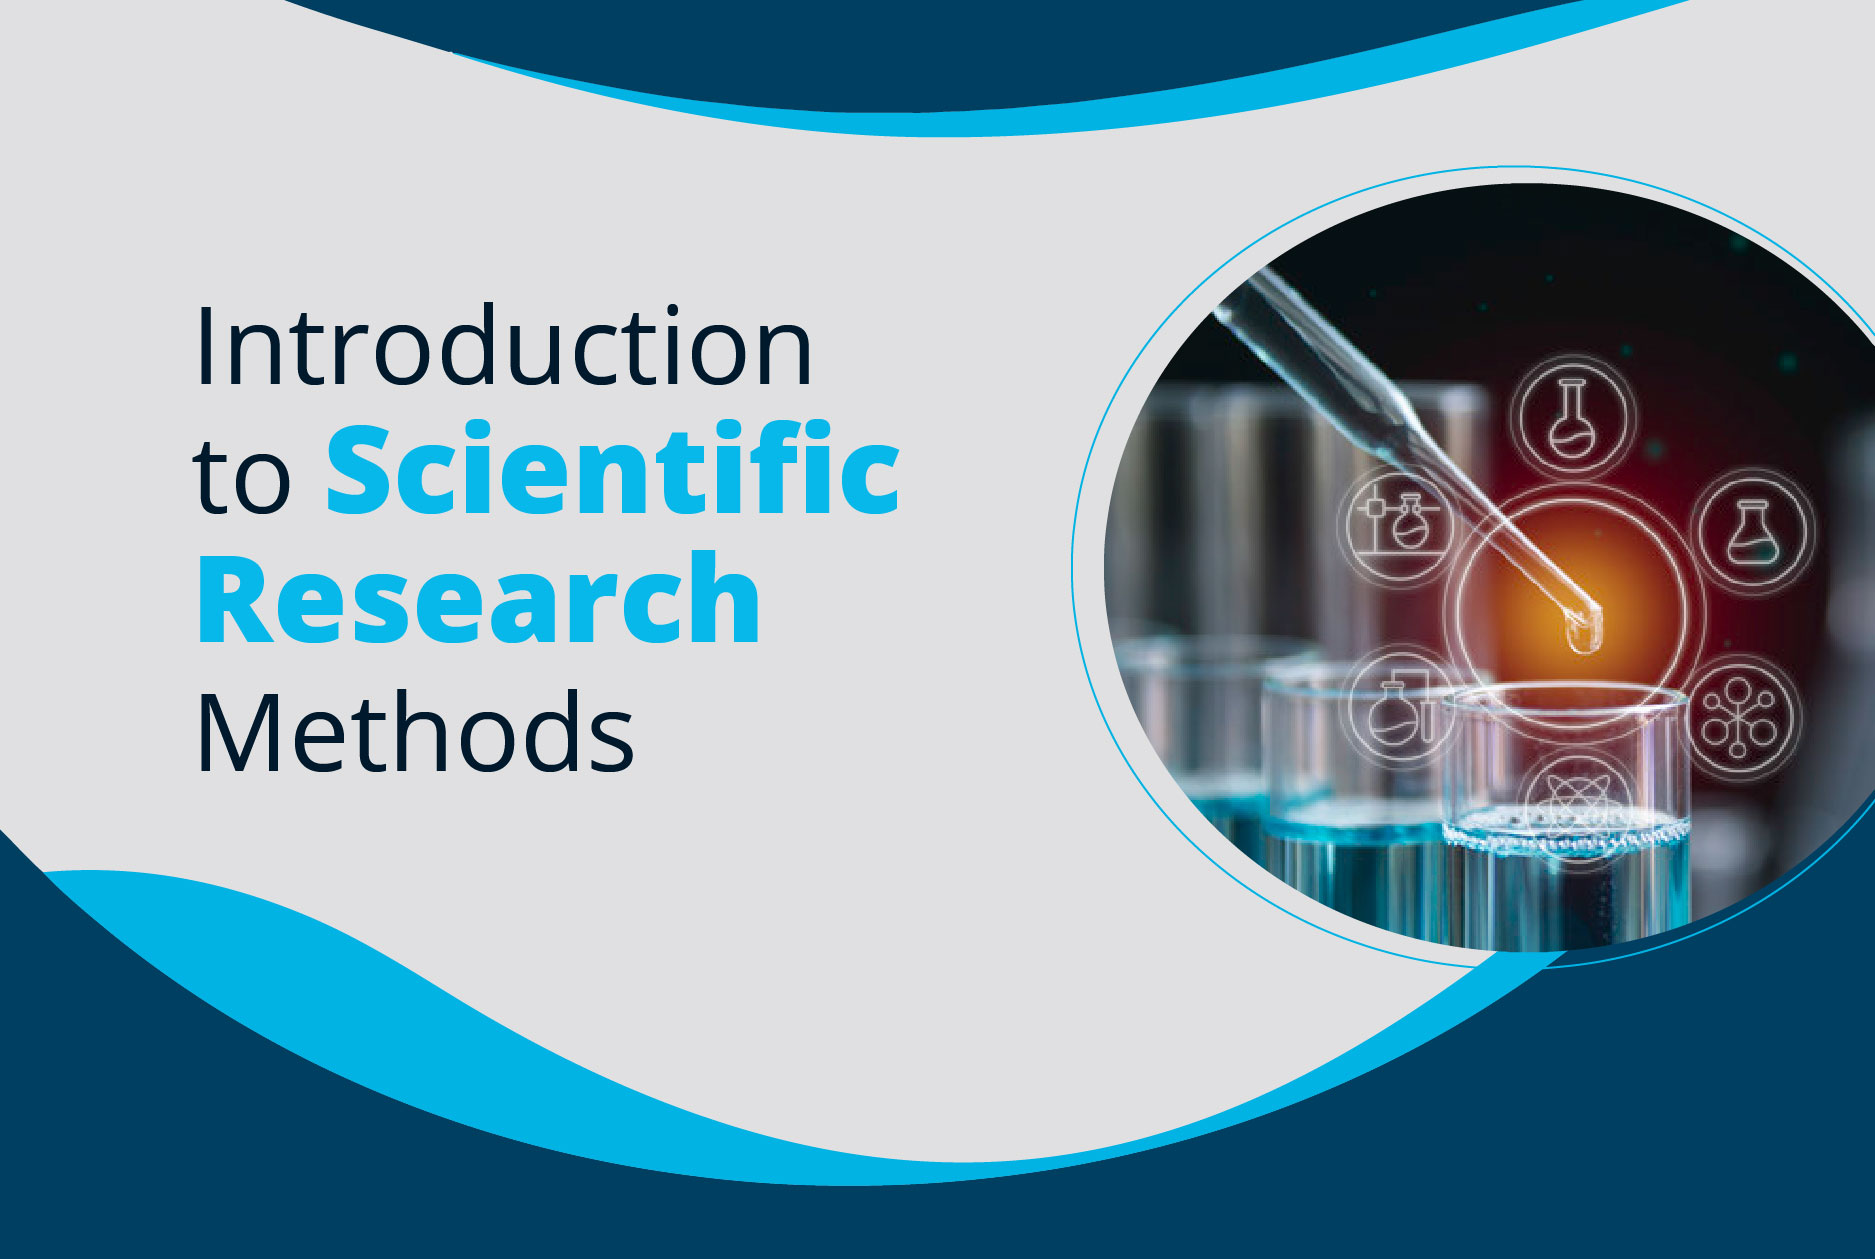 Introduction to Scientific Research Methods